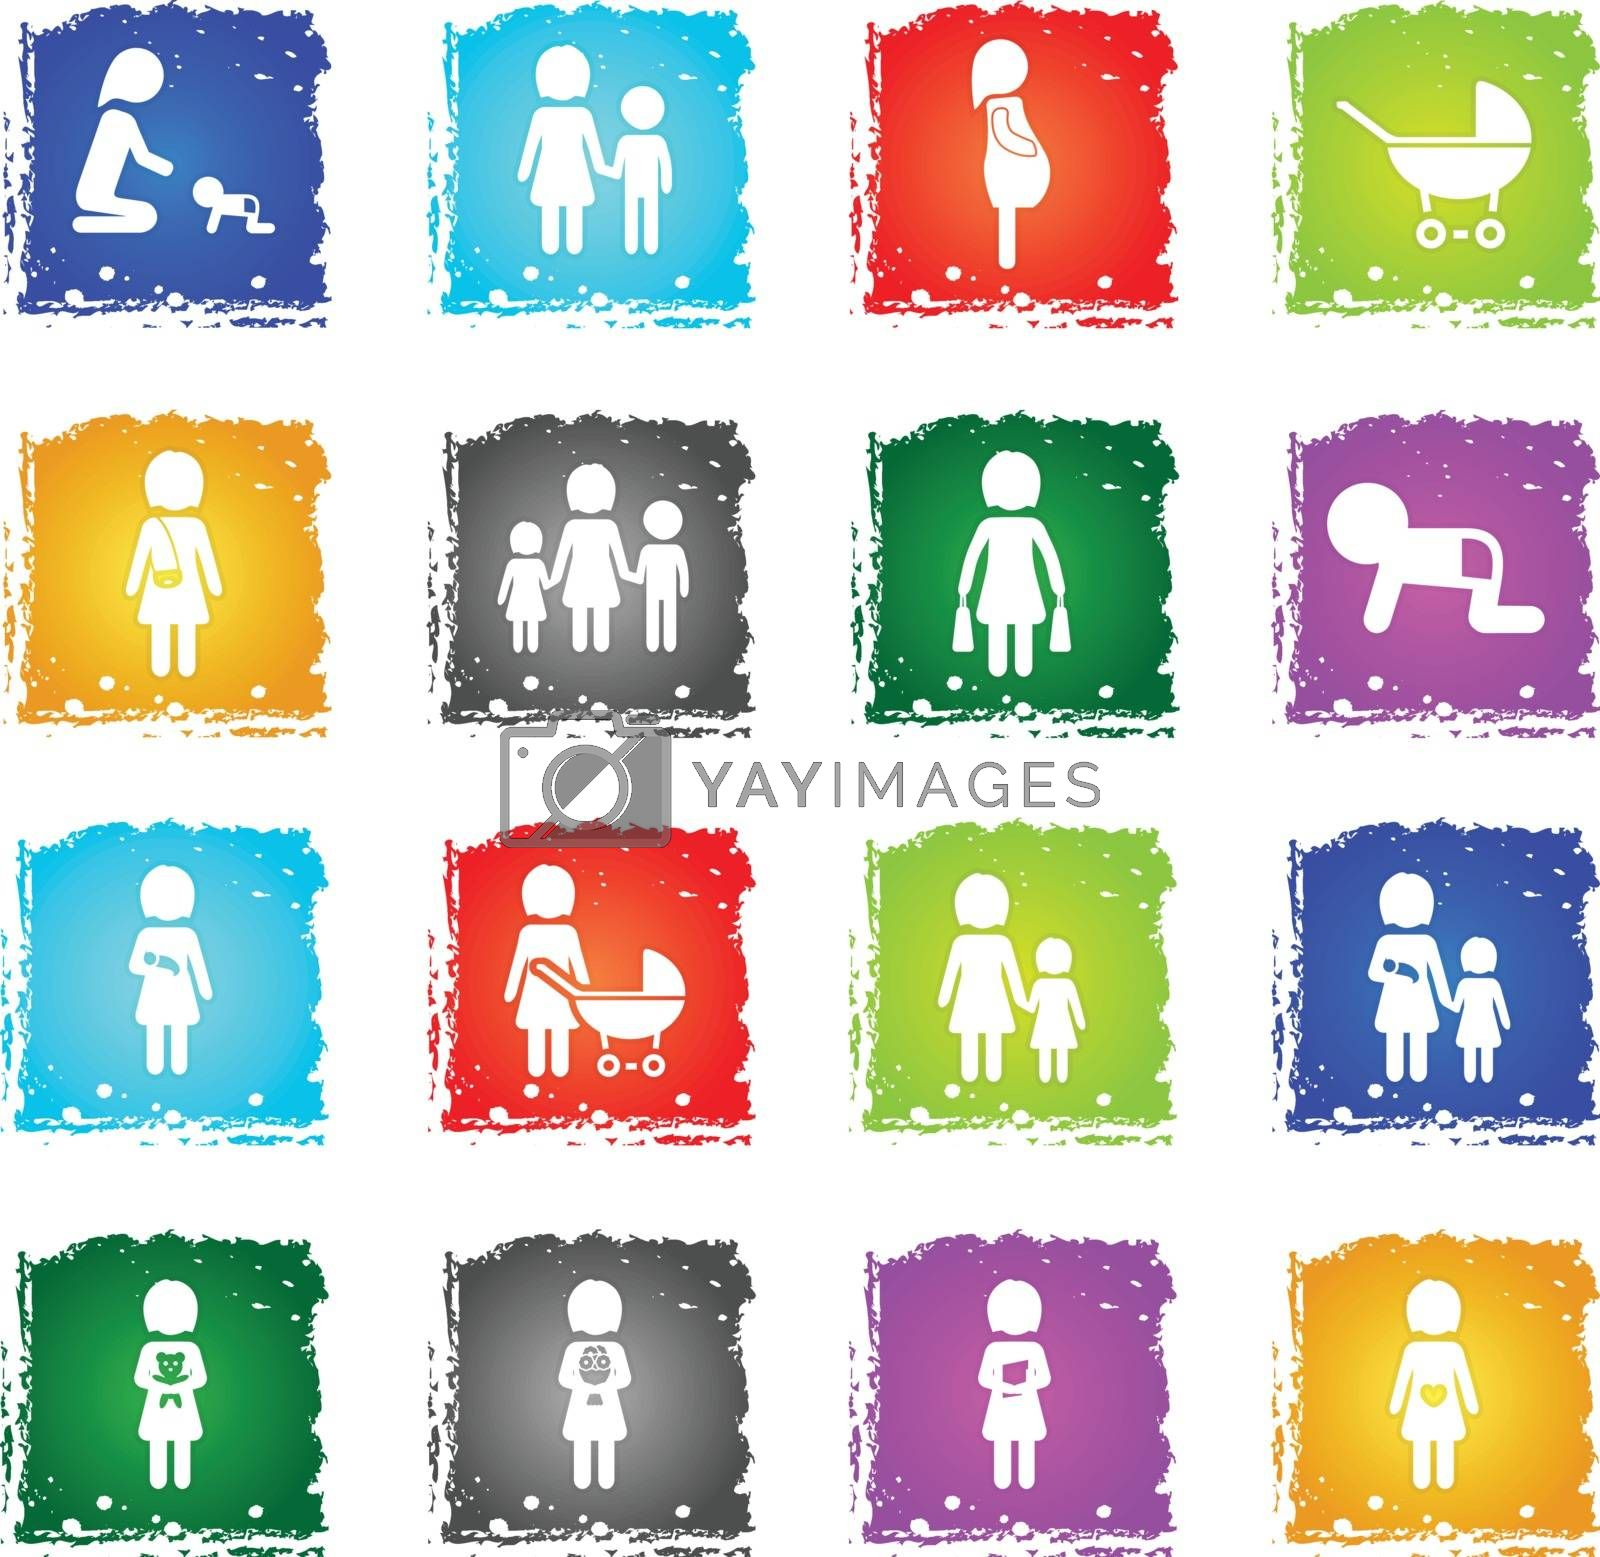 People and family simply symbols in grunge style for user interface design